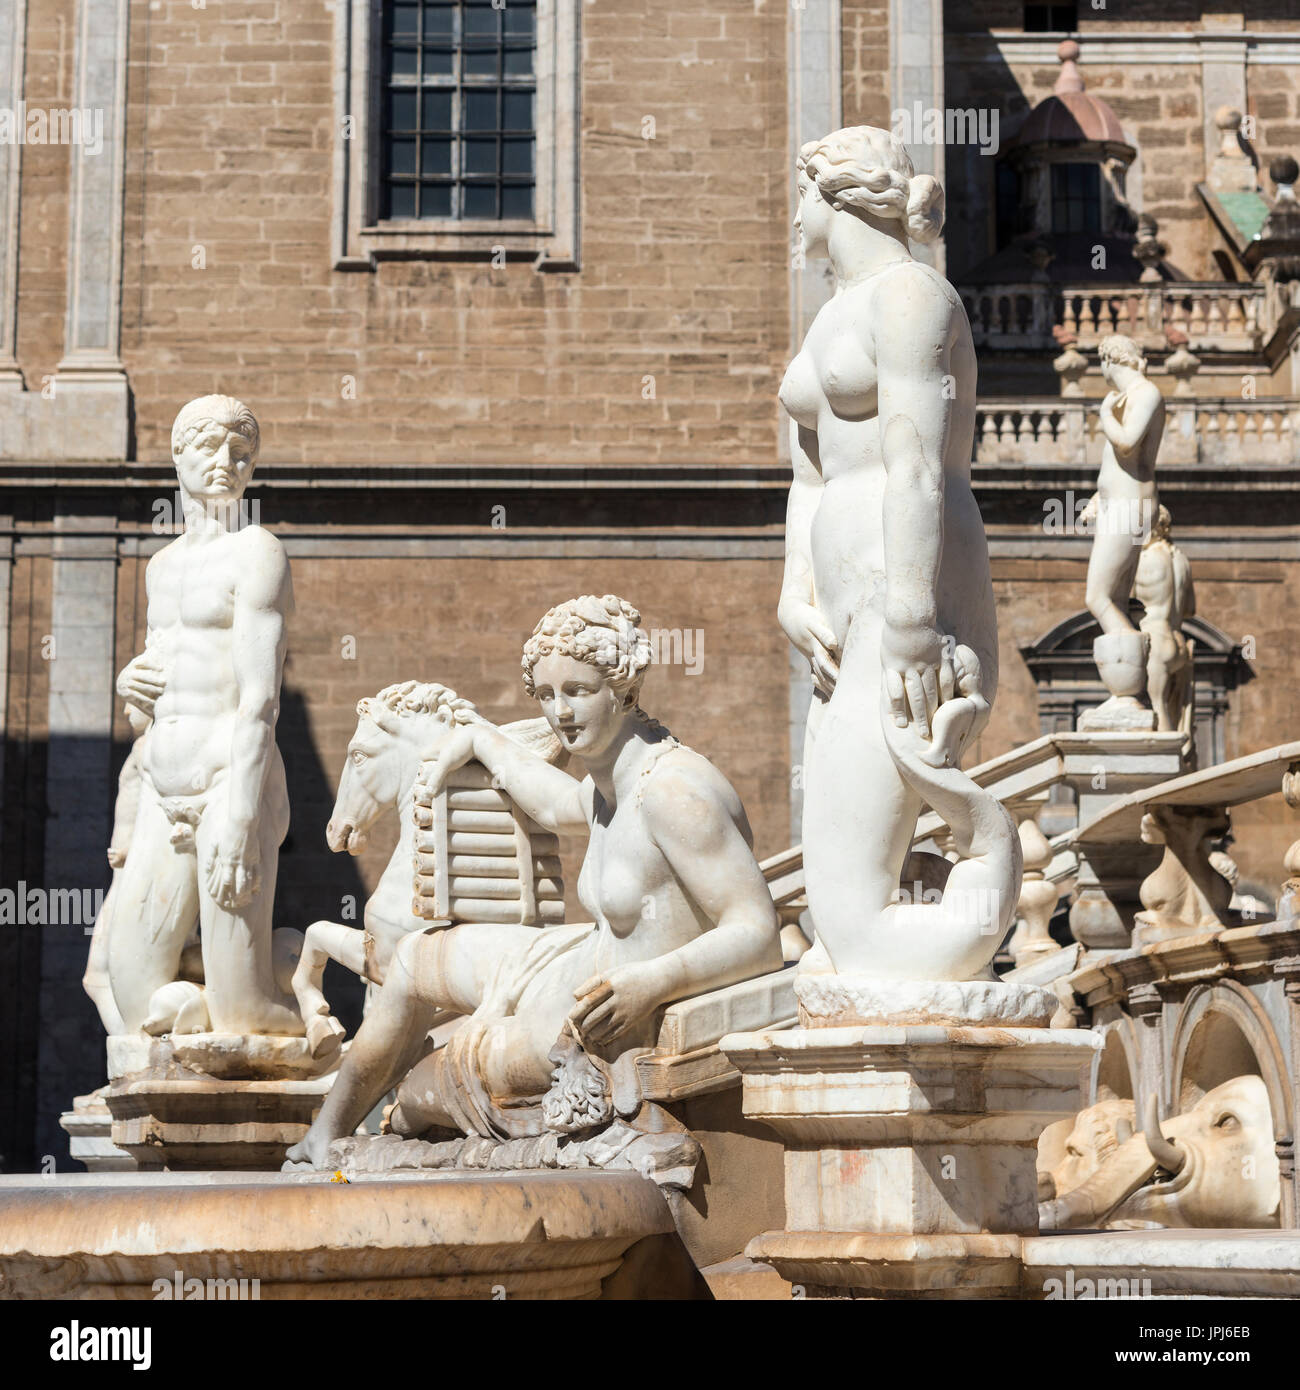 Marble statues of nymphs, humans, mermaids and satyrs on the 16th century Florentine fountain in Piazza Pretoria, central Palermo, Sicily, Italy. - Stock Image